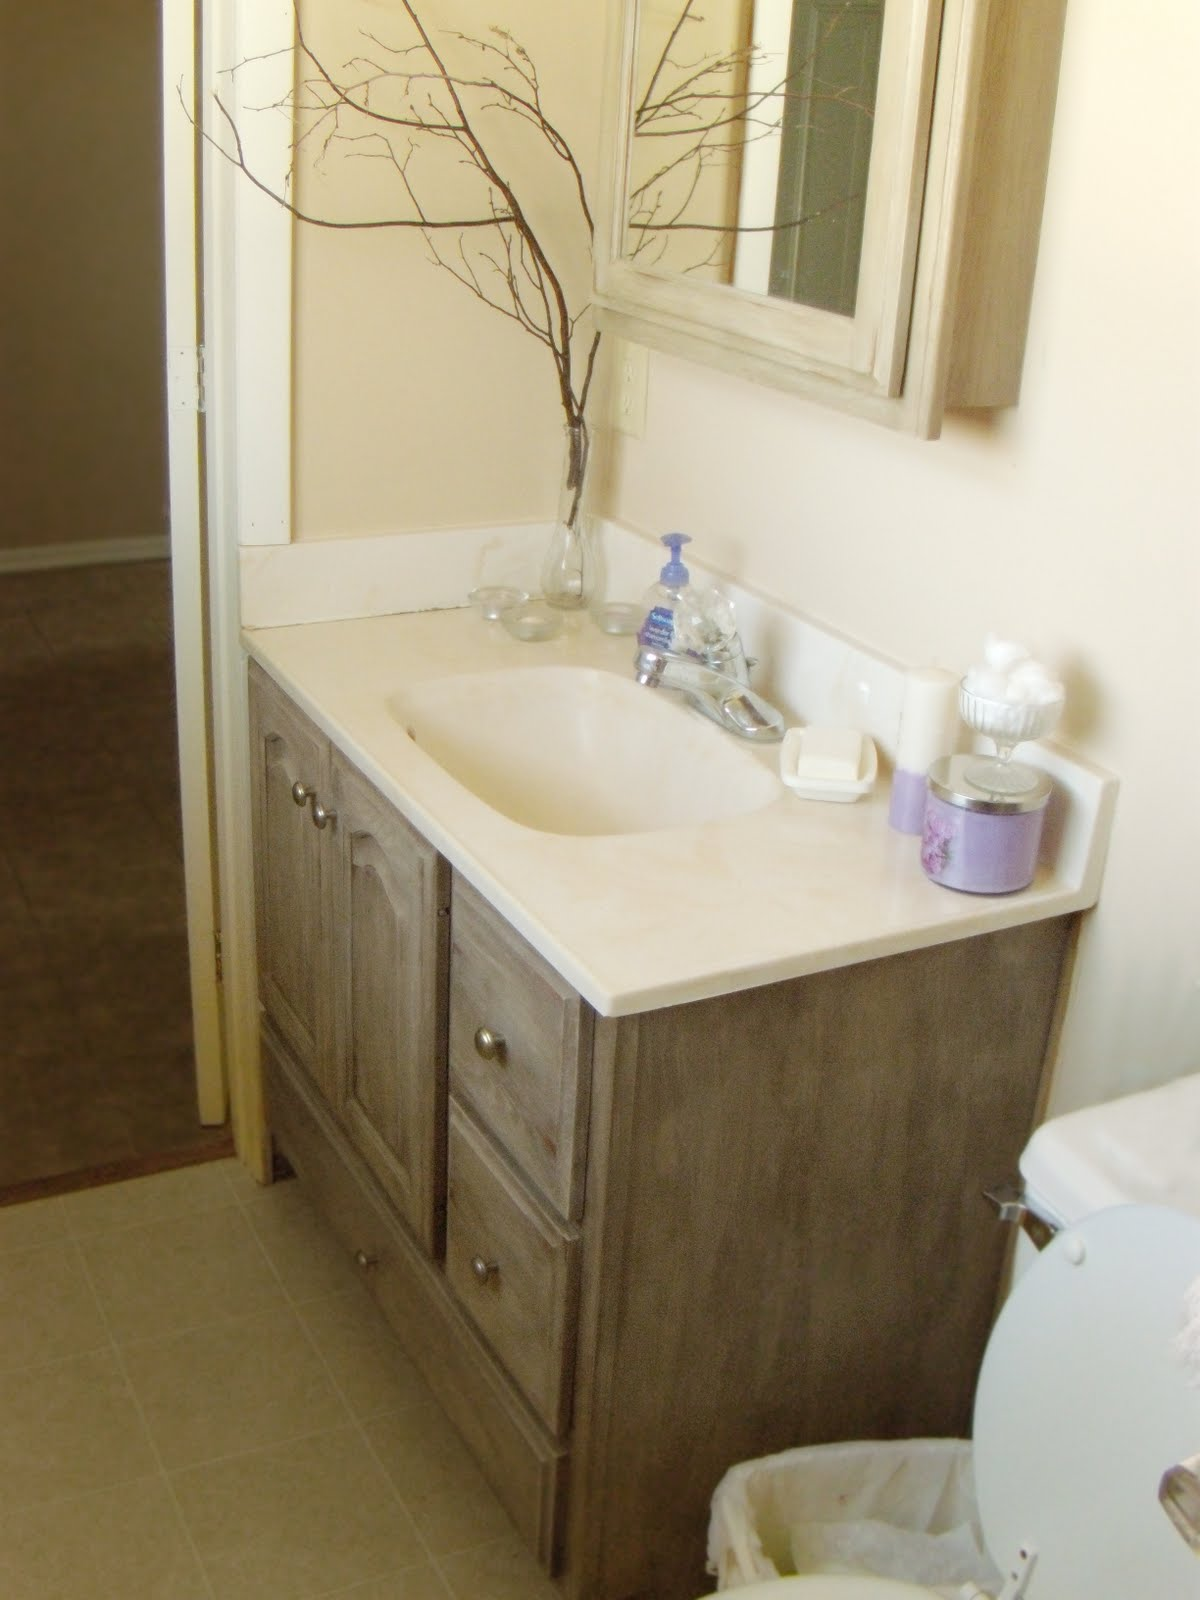 Redo Bathroom Cabinets Gorgeous Down On Sanford Bathroom Vanity Redo Design Ideas